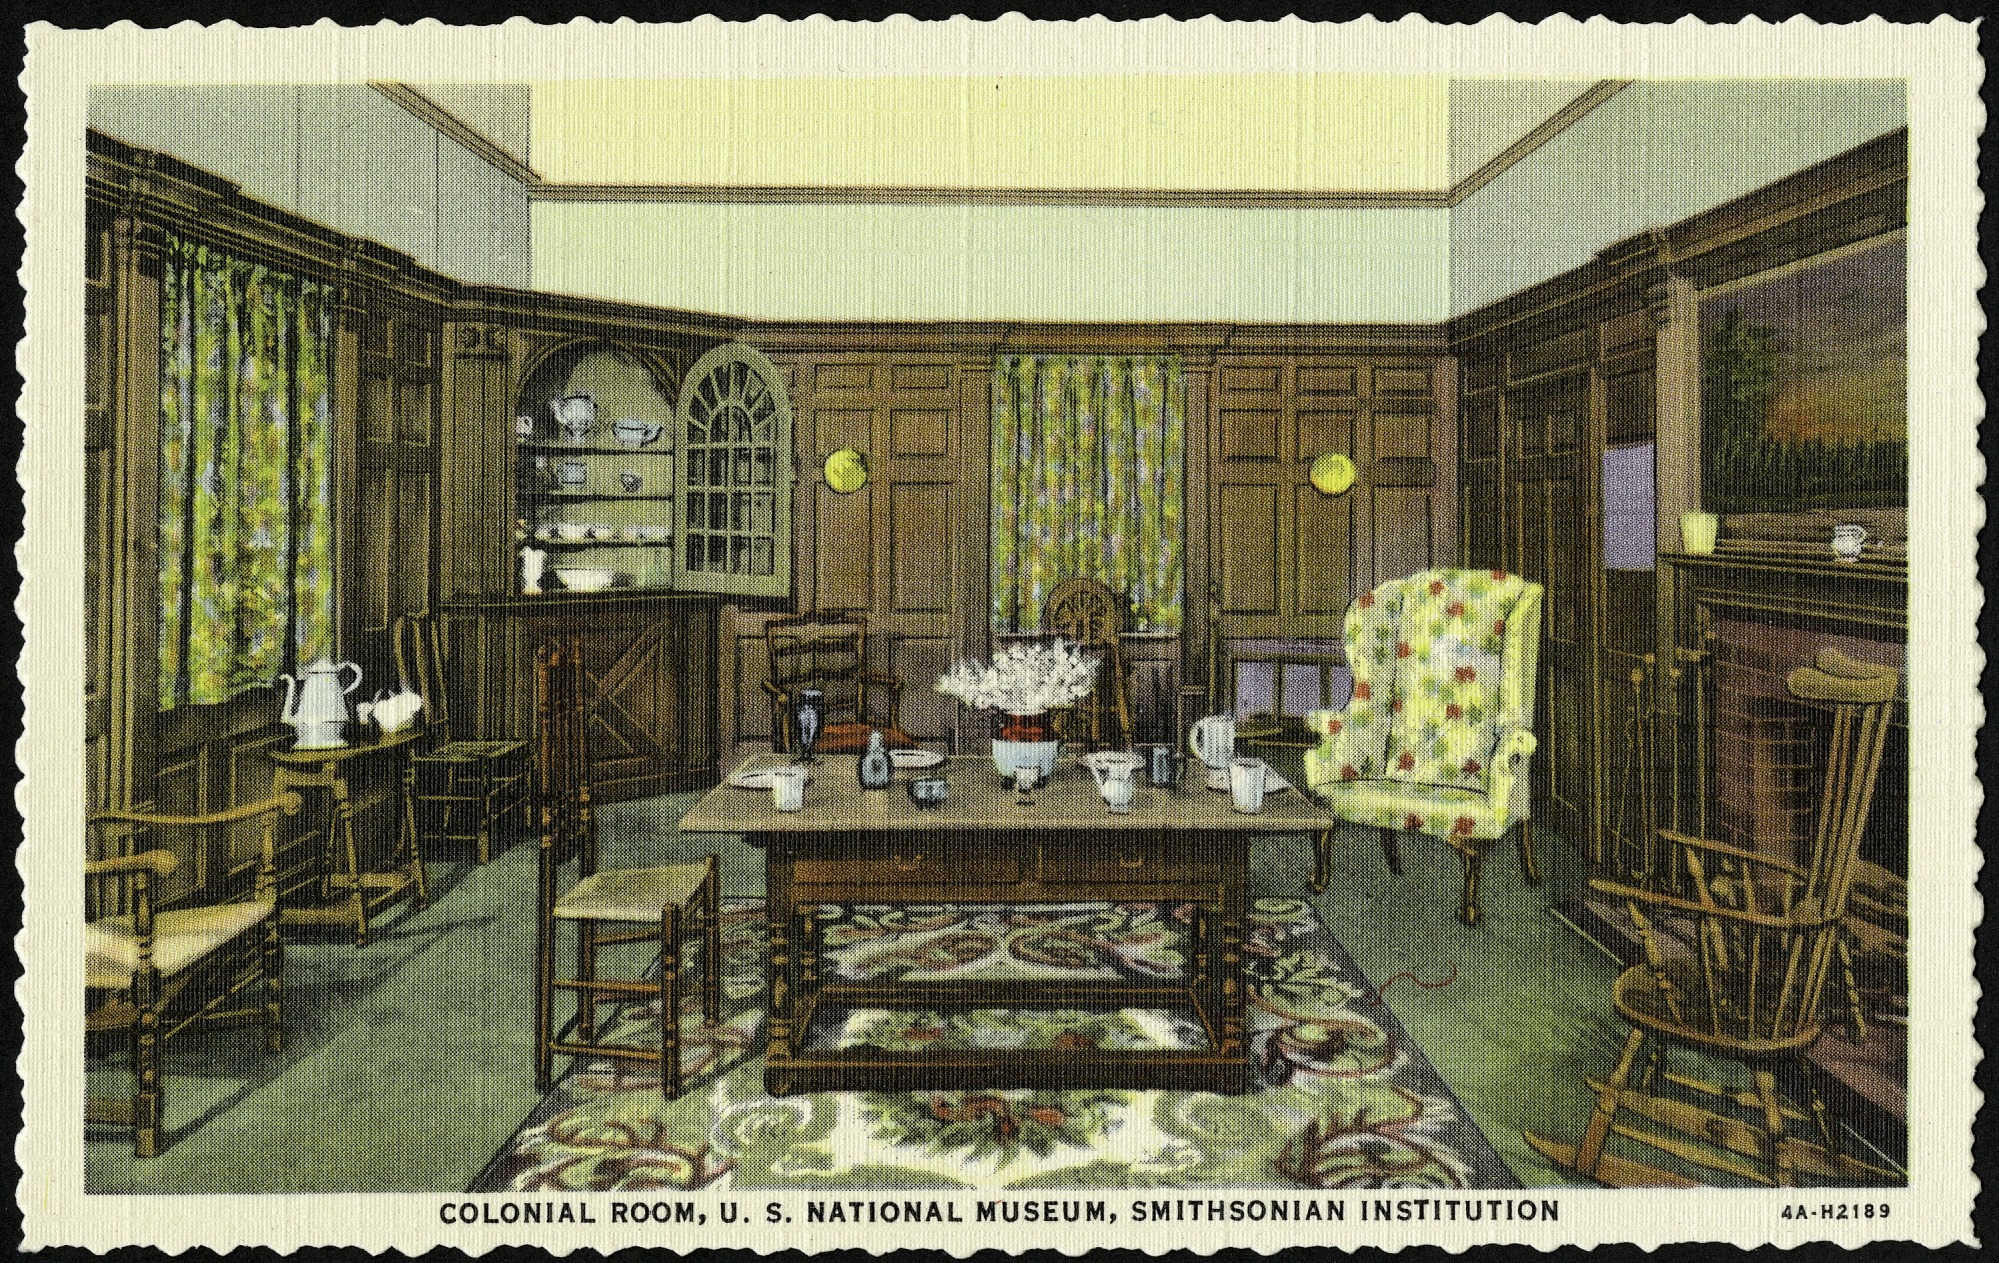 Postcard of the Colonial Room in the United States National Museum